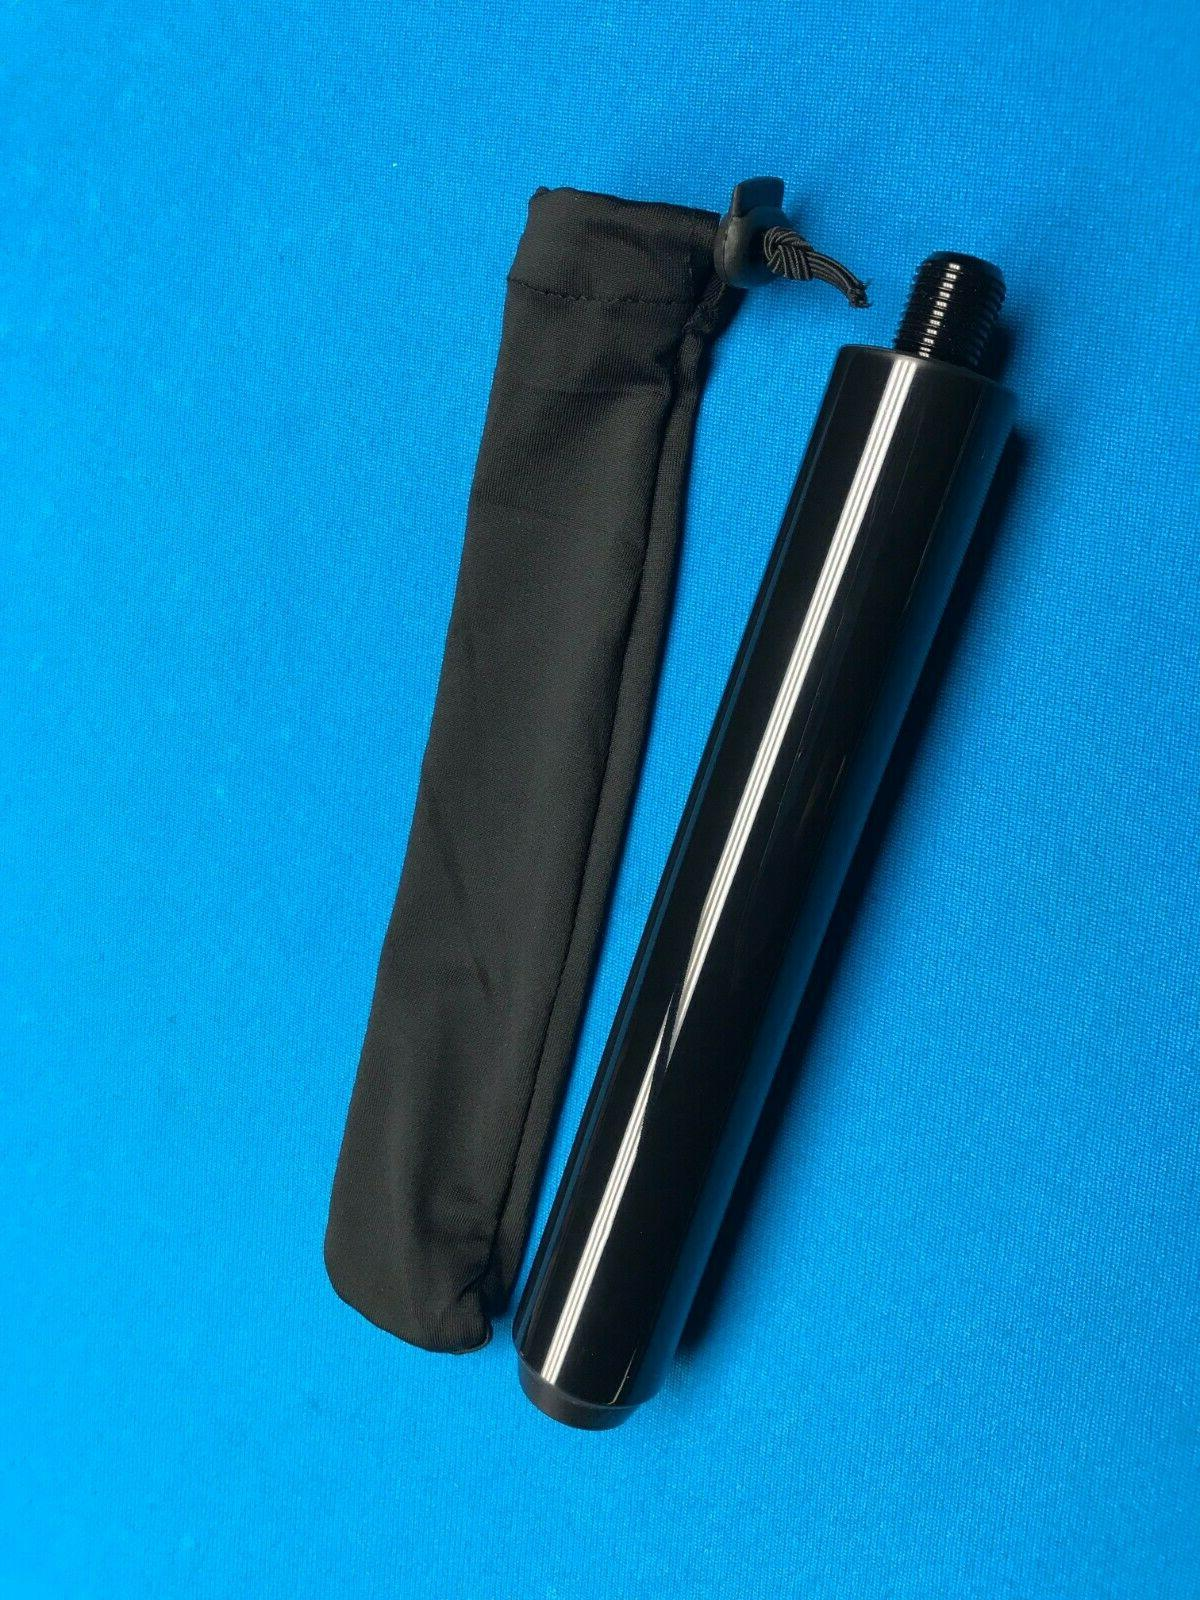 8 inch extension - New Free Shipping